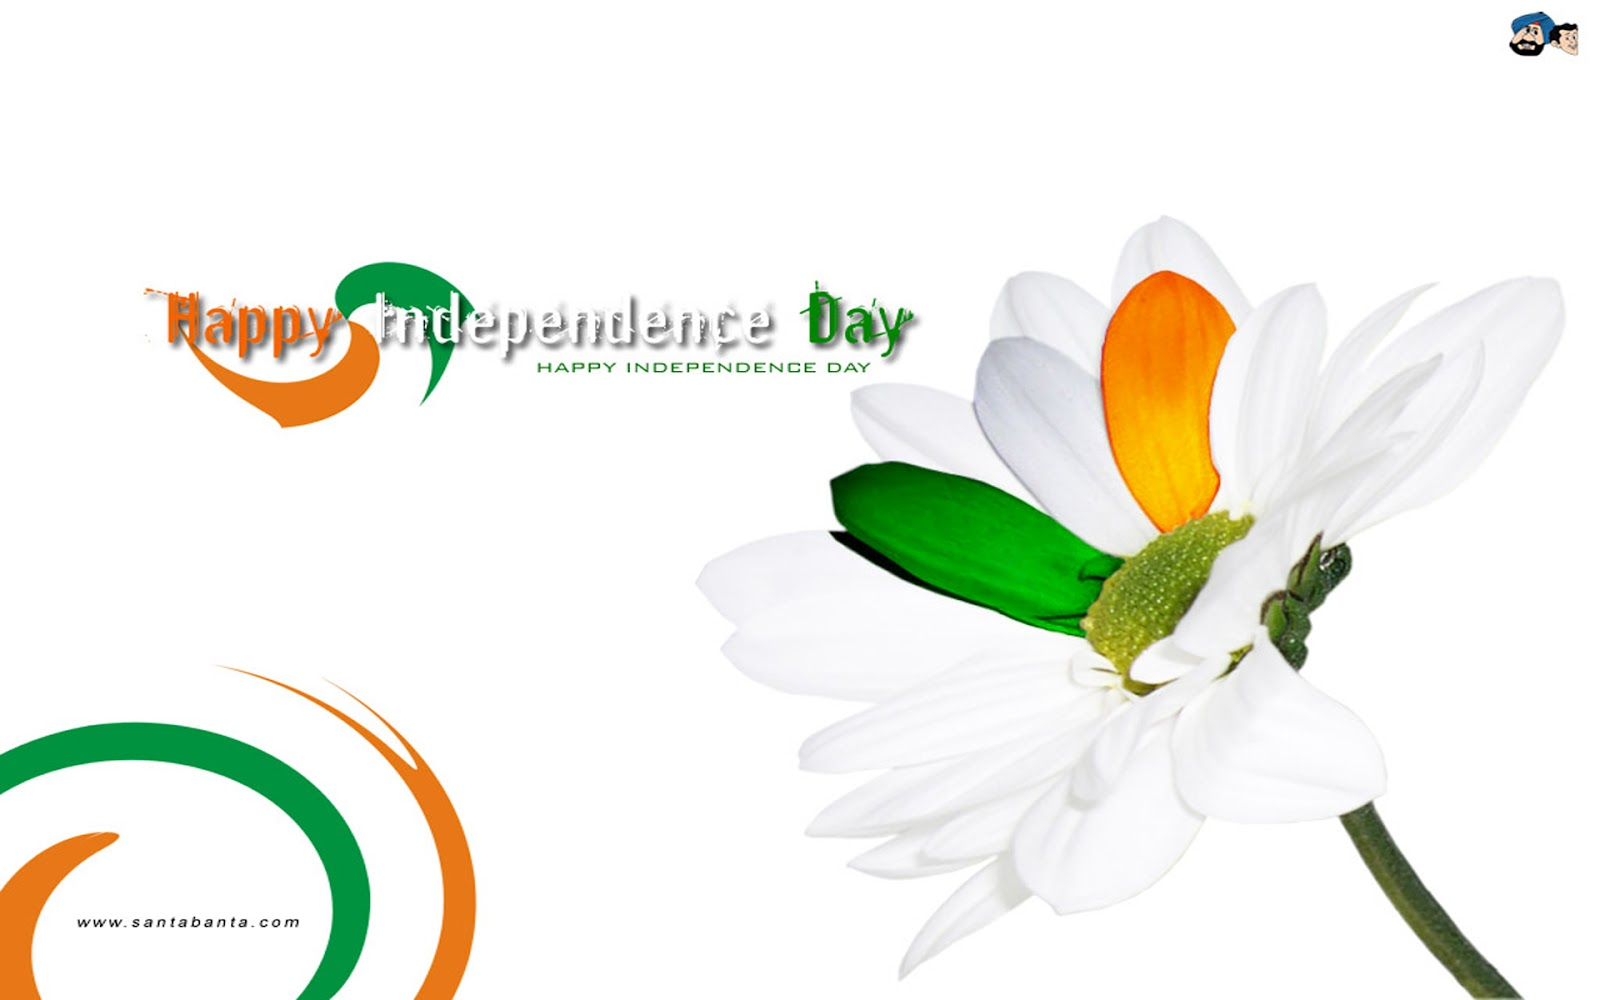 Happy Independence Day Full HD Wallpaper 2012 1600x1000